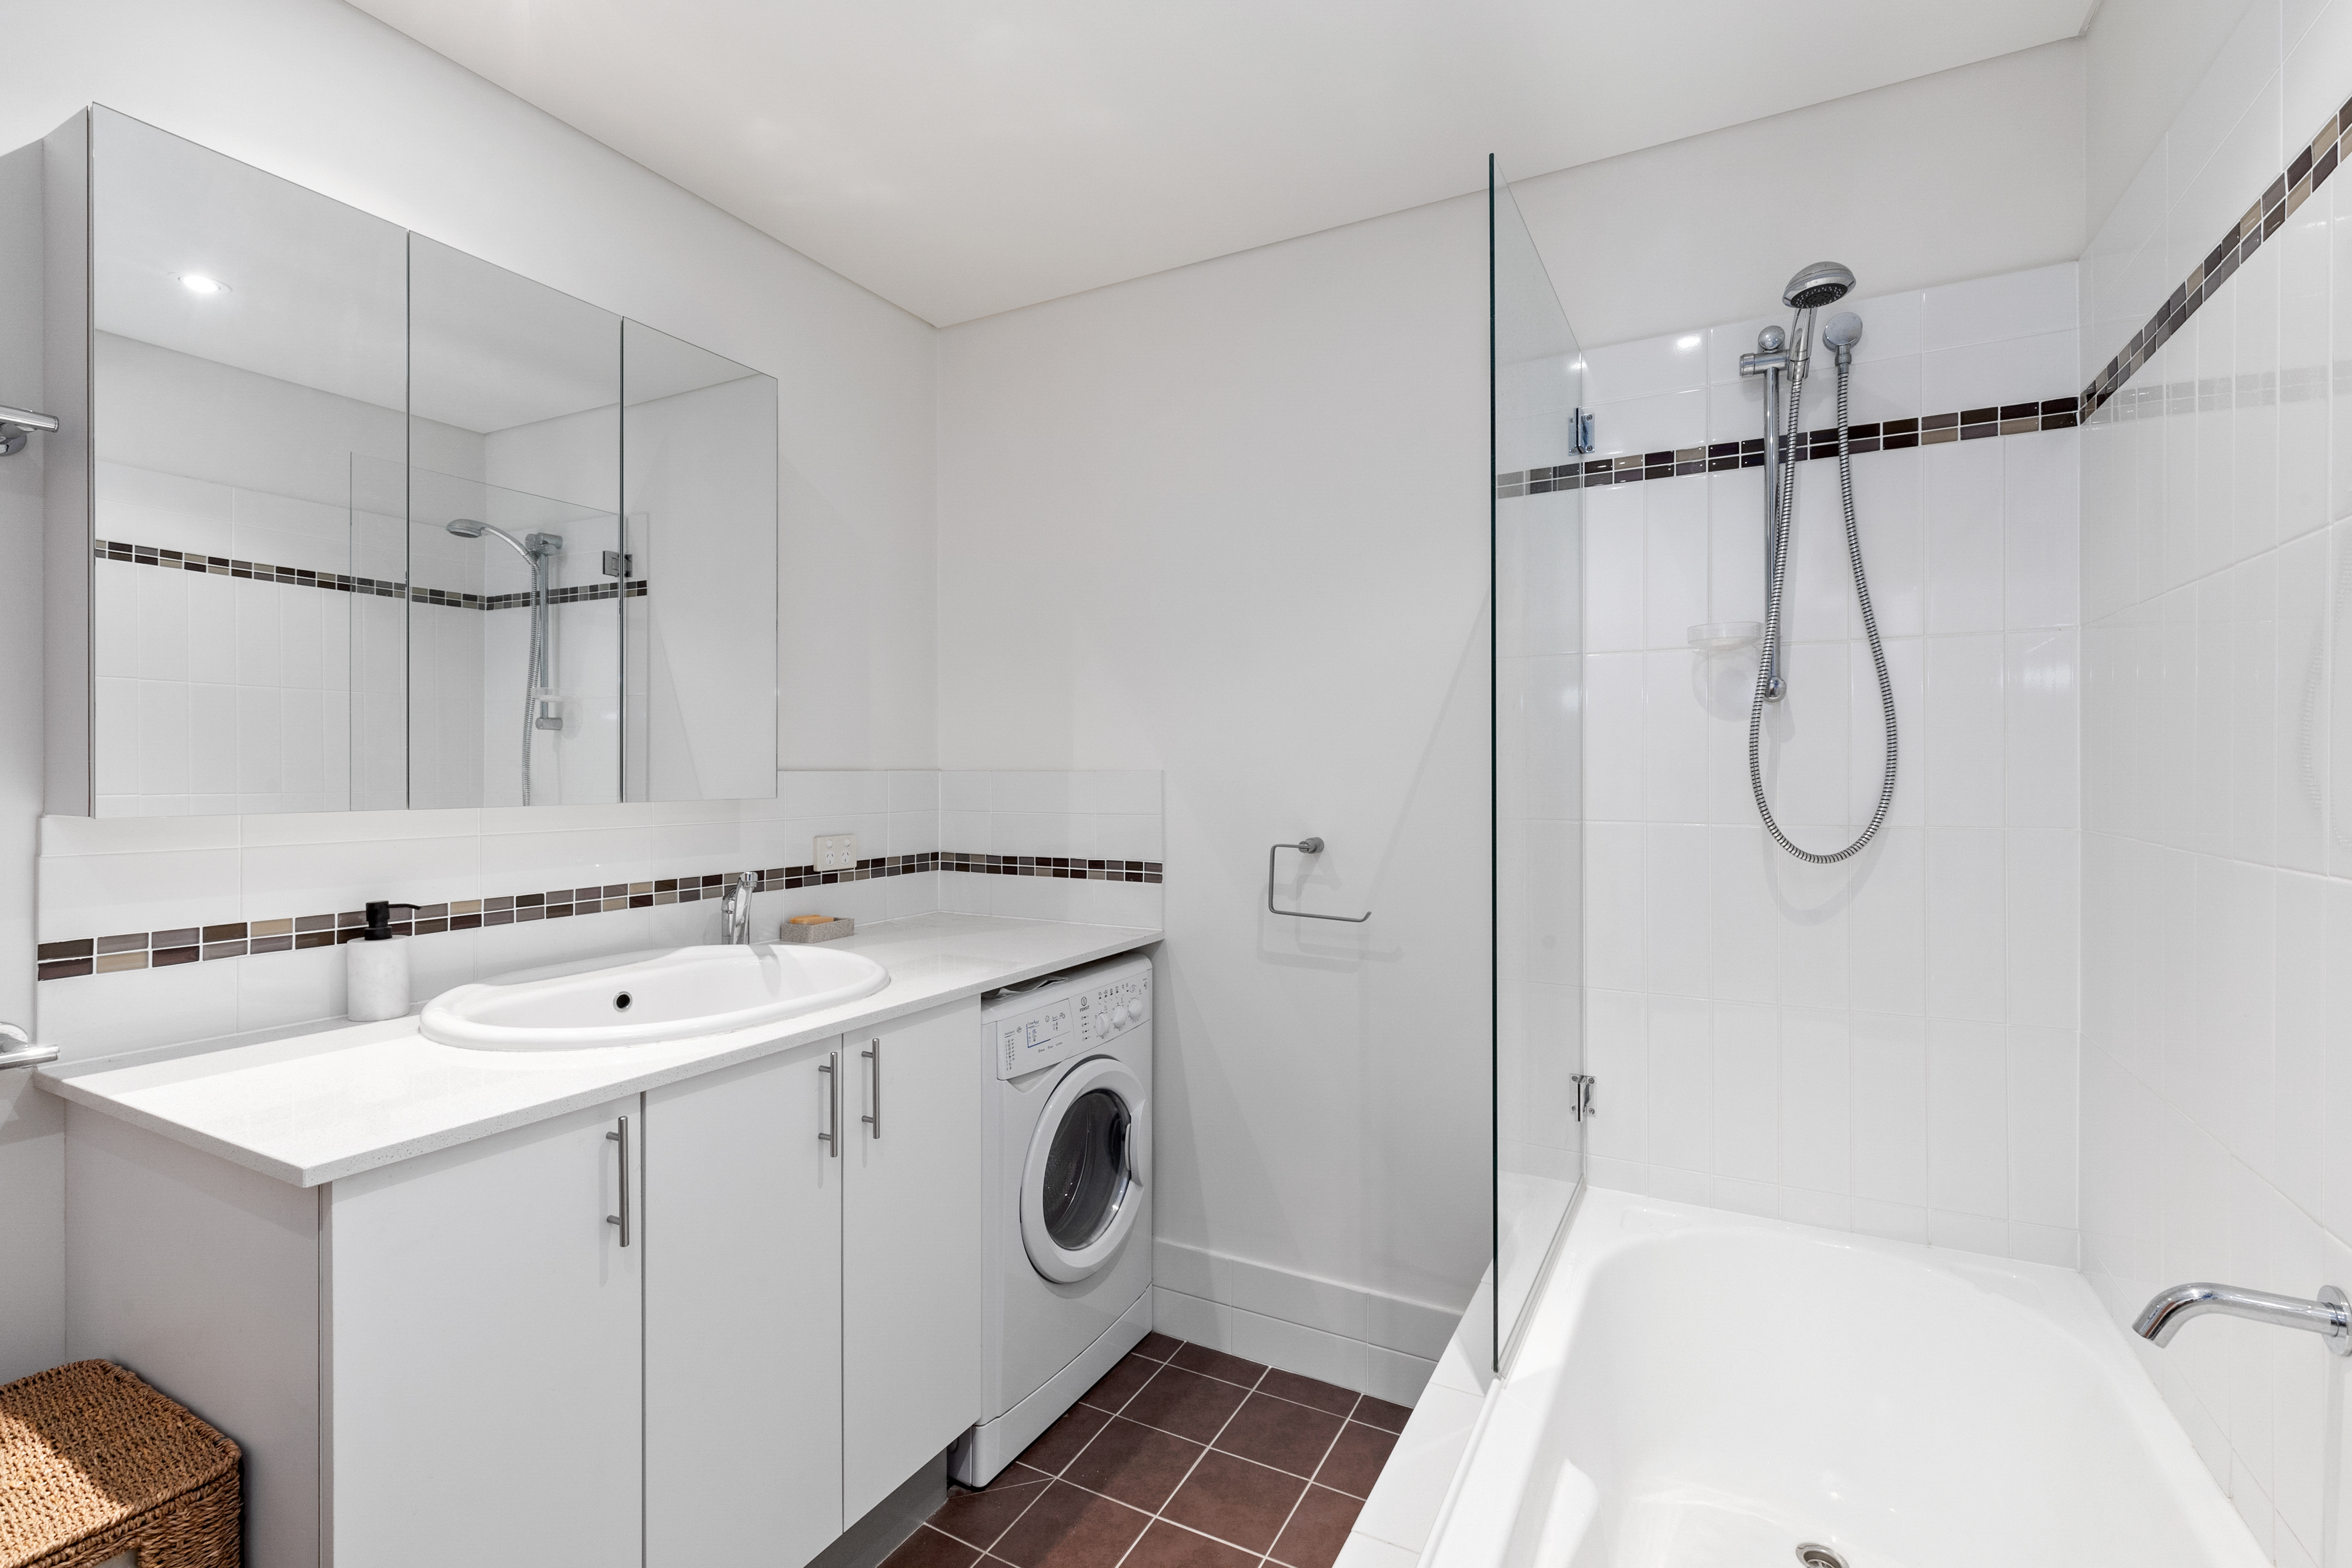 PRINT 404 48 Outram St, West Perth 01